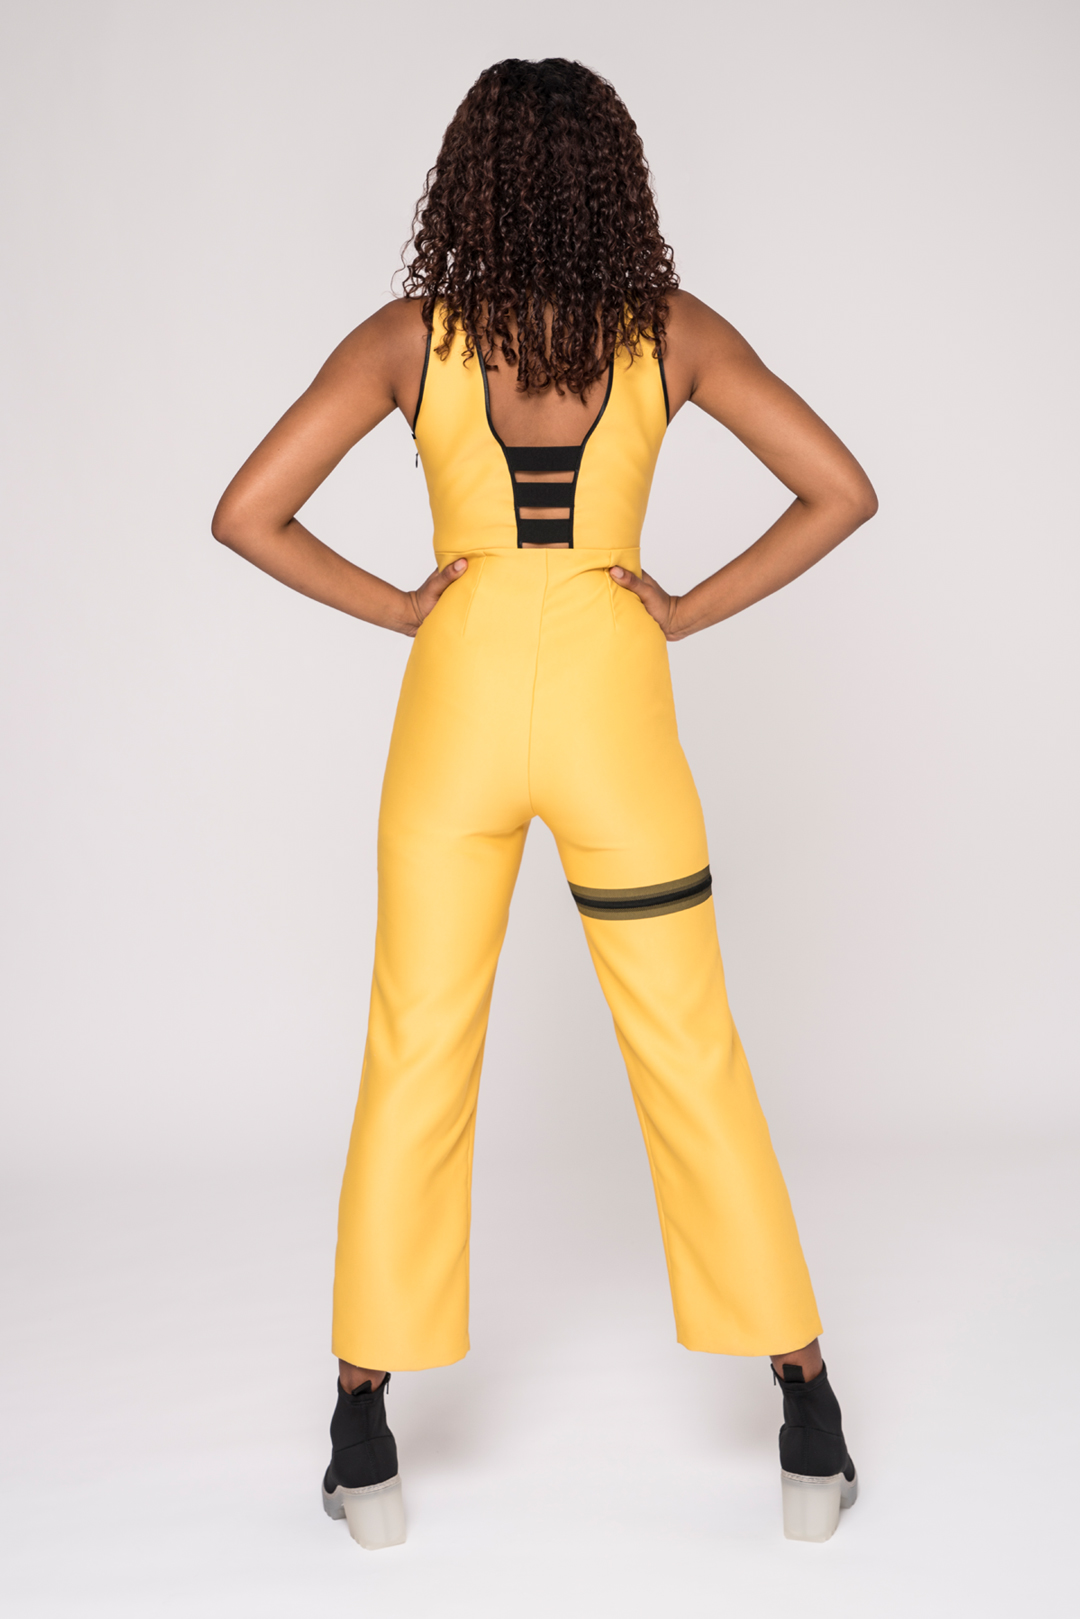 back view of a black model wearing a yellow v-neck jumpsuit